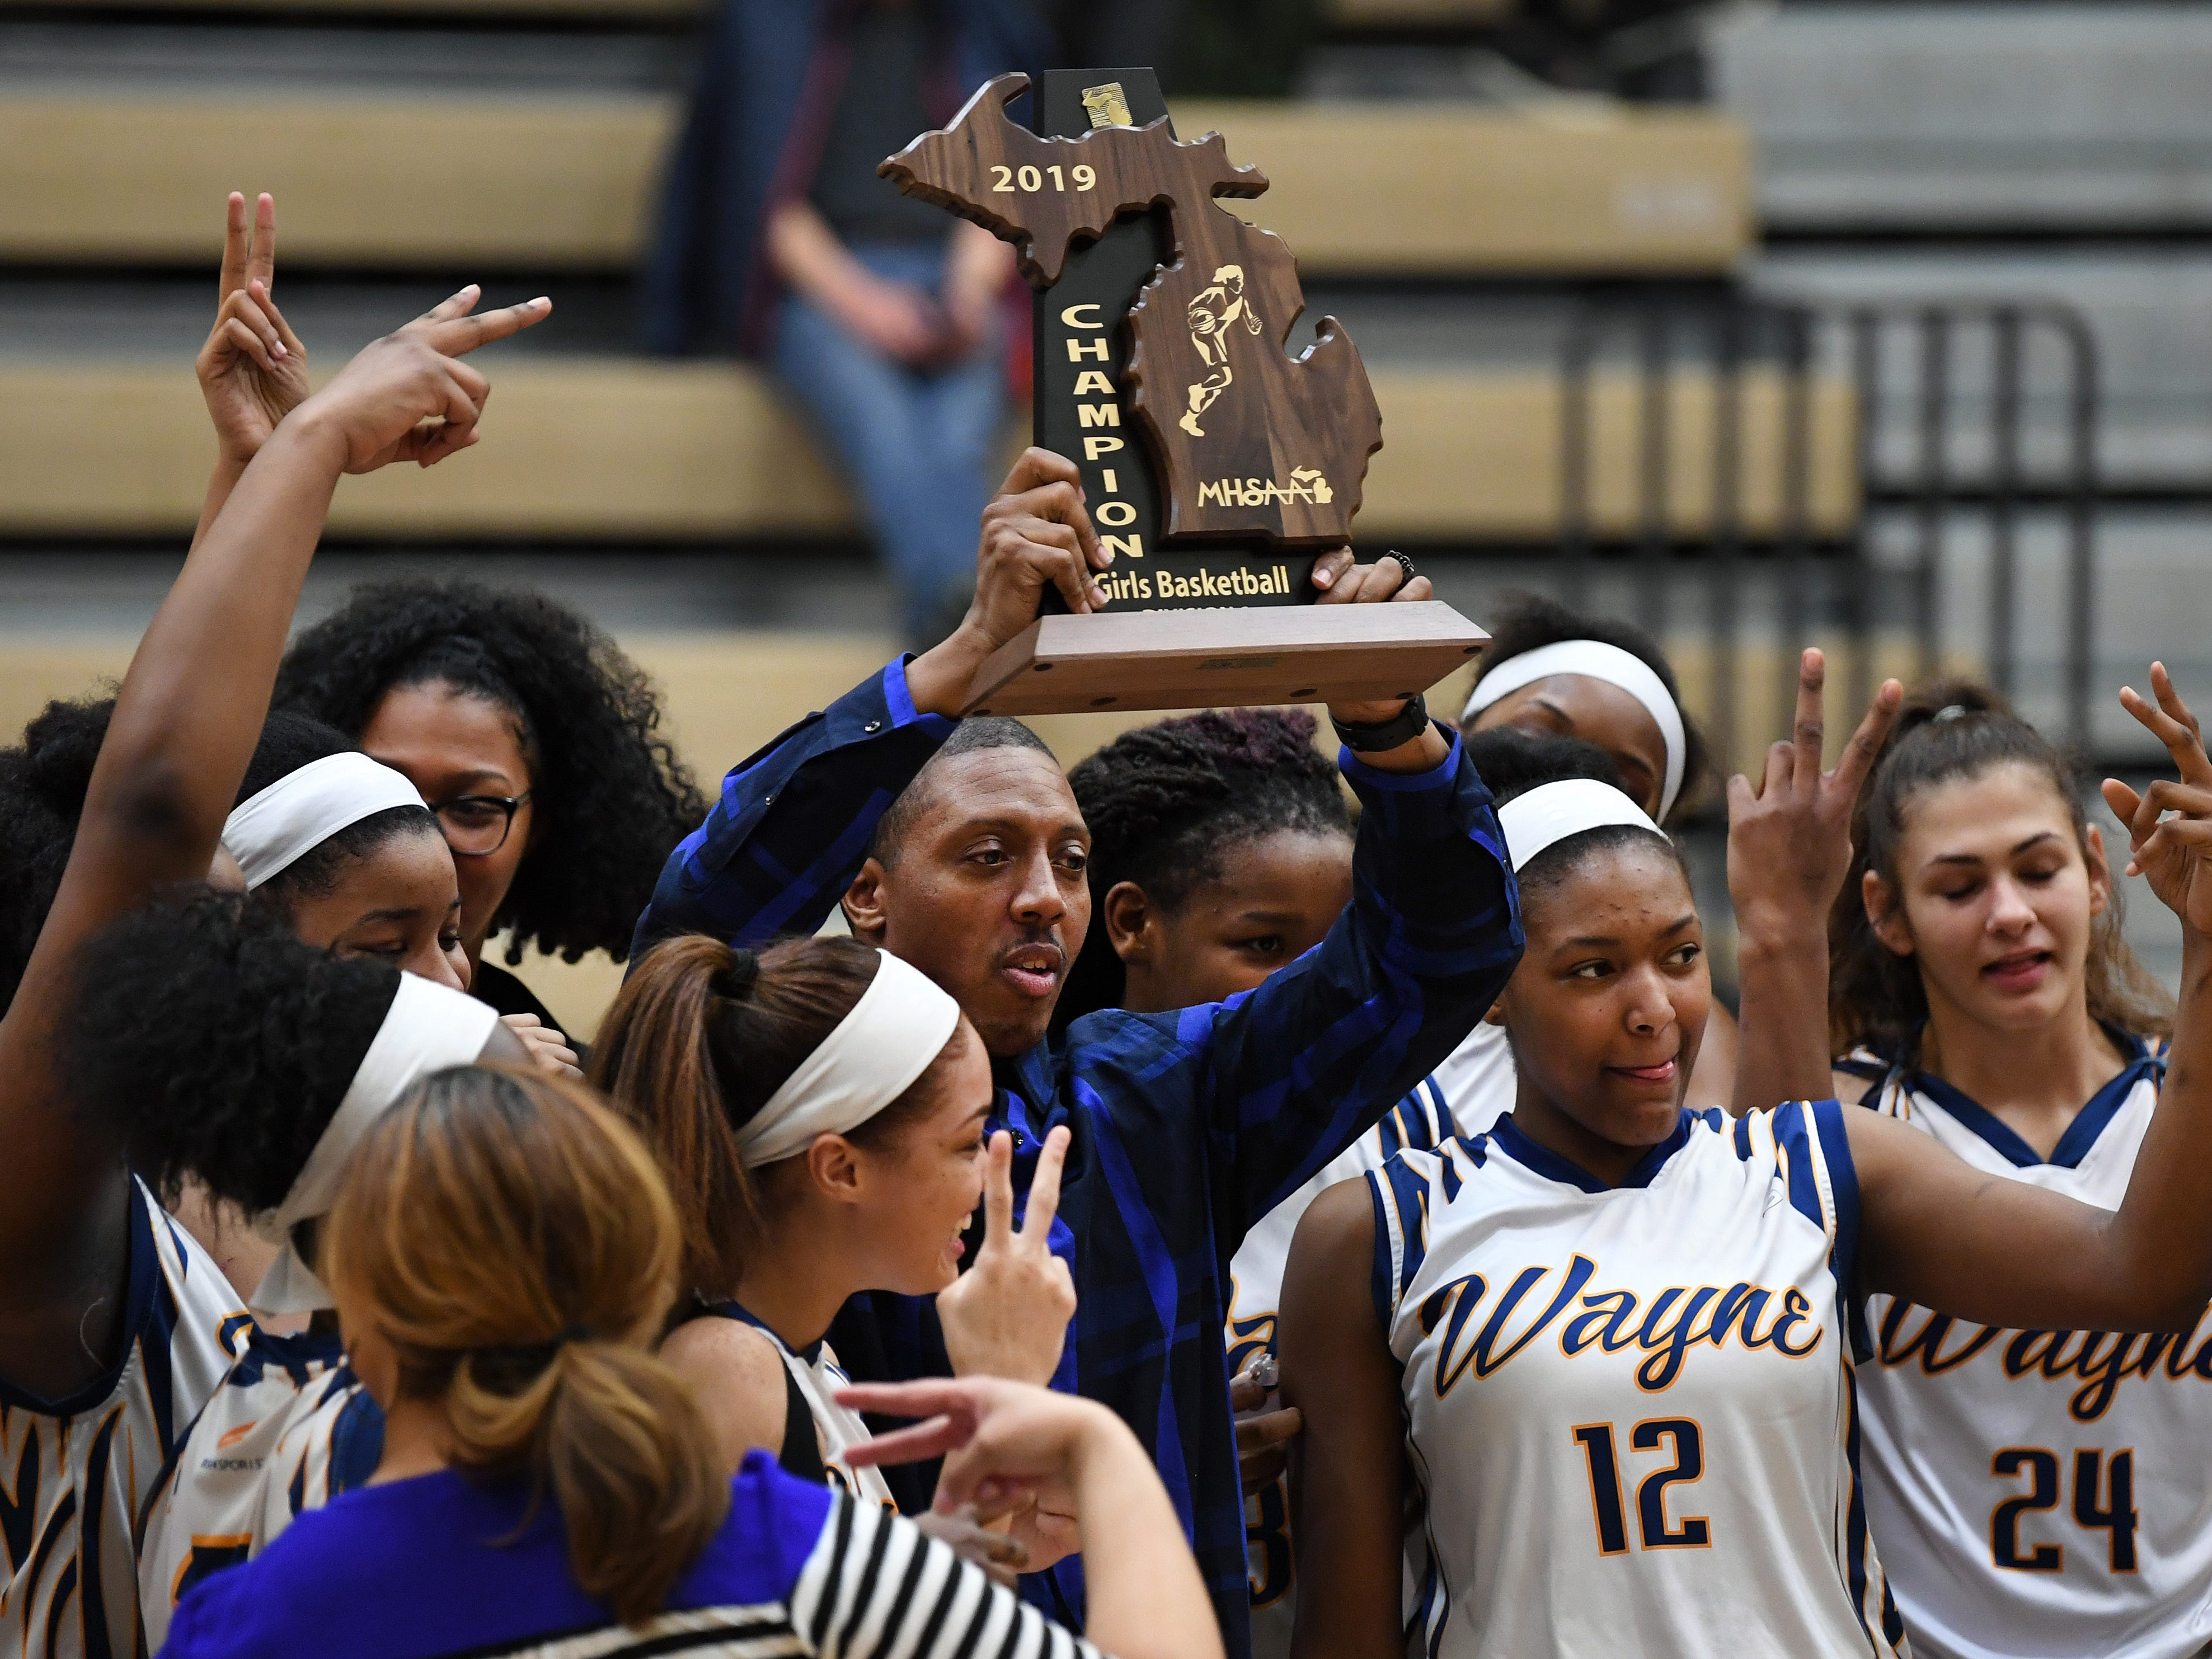 Wayne Memorial girls basketball head coach Jarvis Mitchell, center, is surrounded by his team as he hoists a Division 1 regional trophy following a 53-35 win over Ann Arbor Pioneer, Wednesday, March 13, 2019, at Skyline HS in Ann Arbor, Michigan.